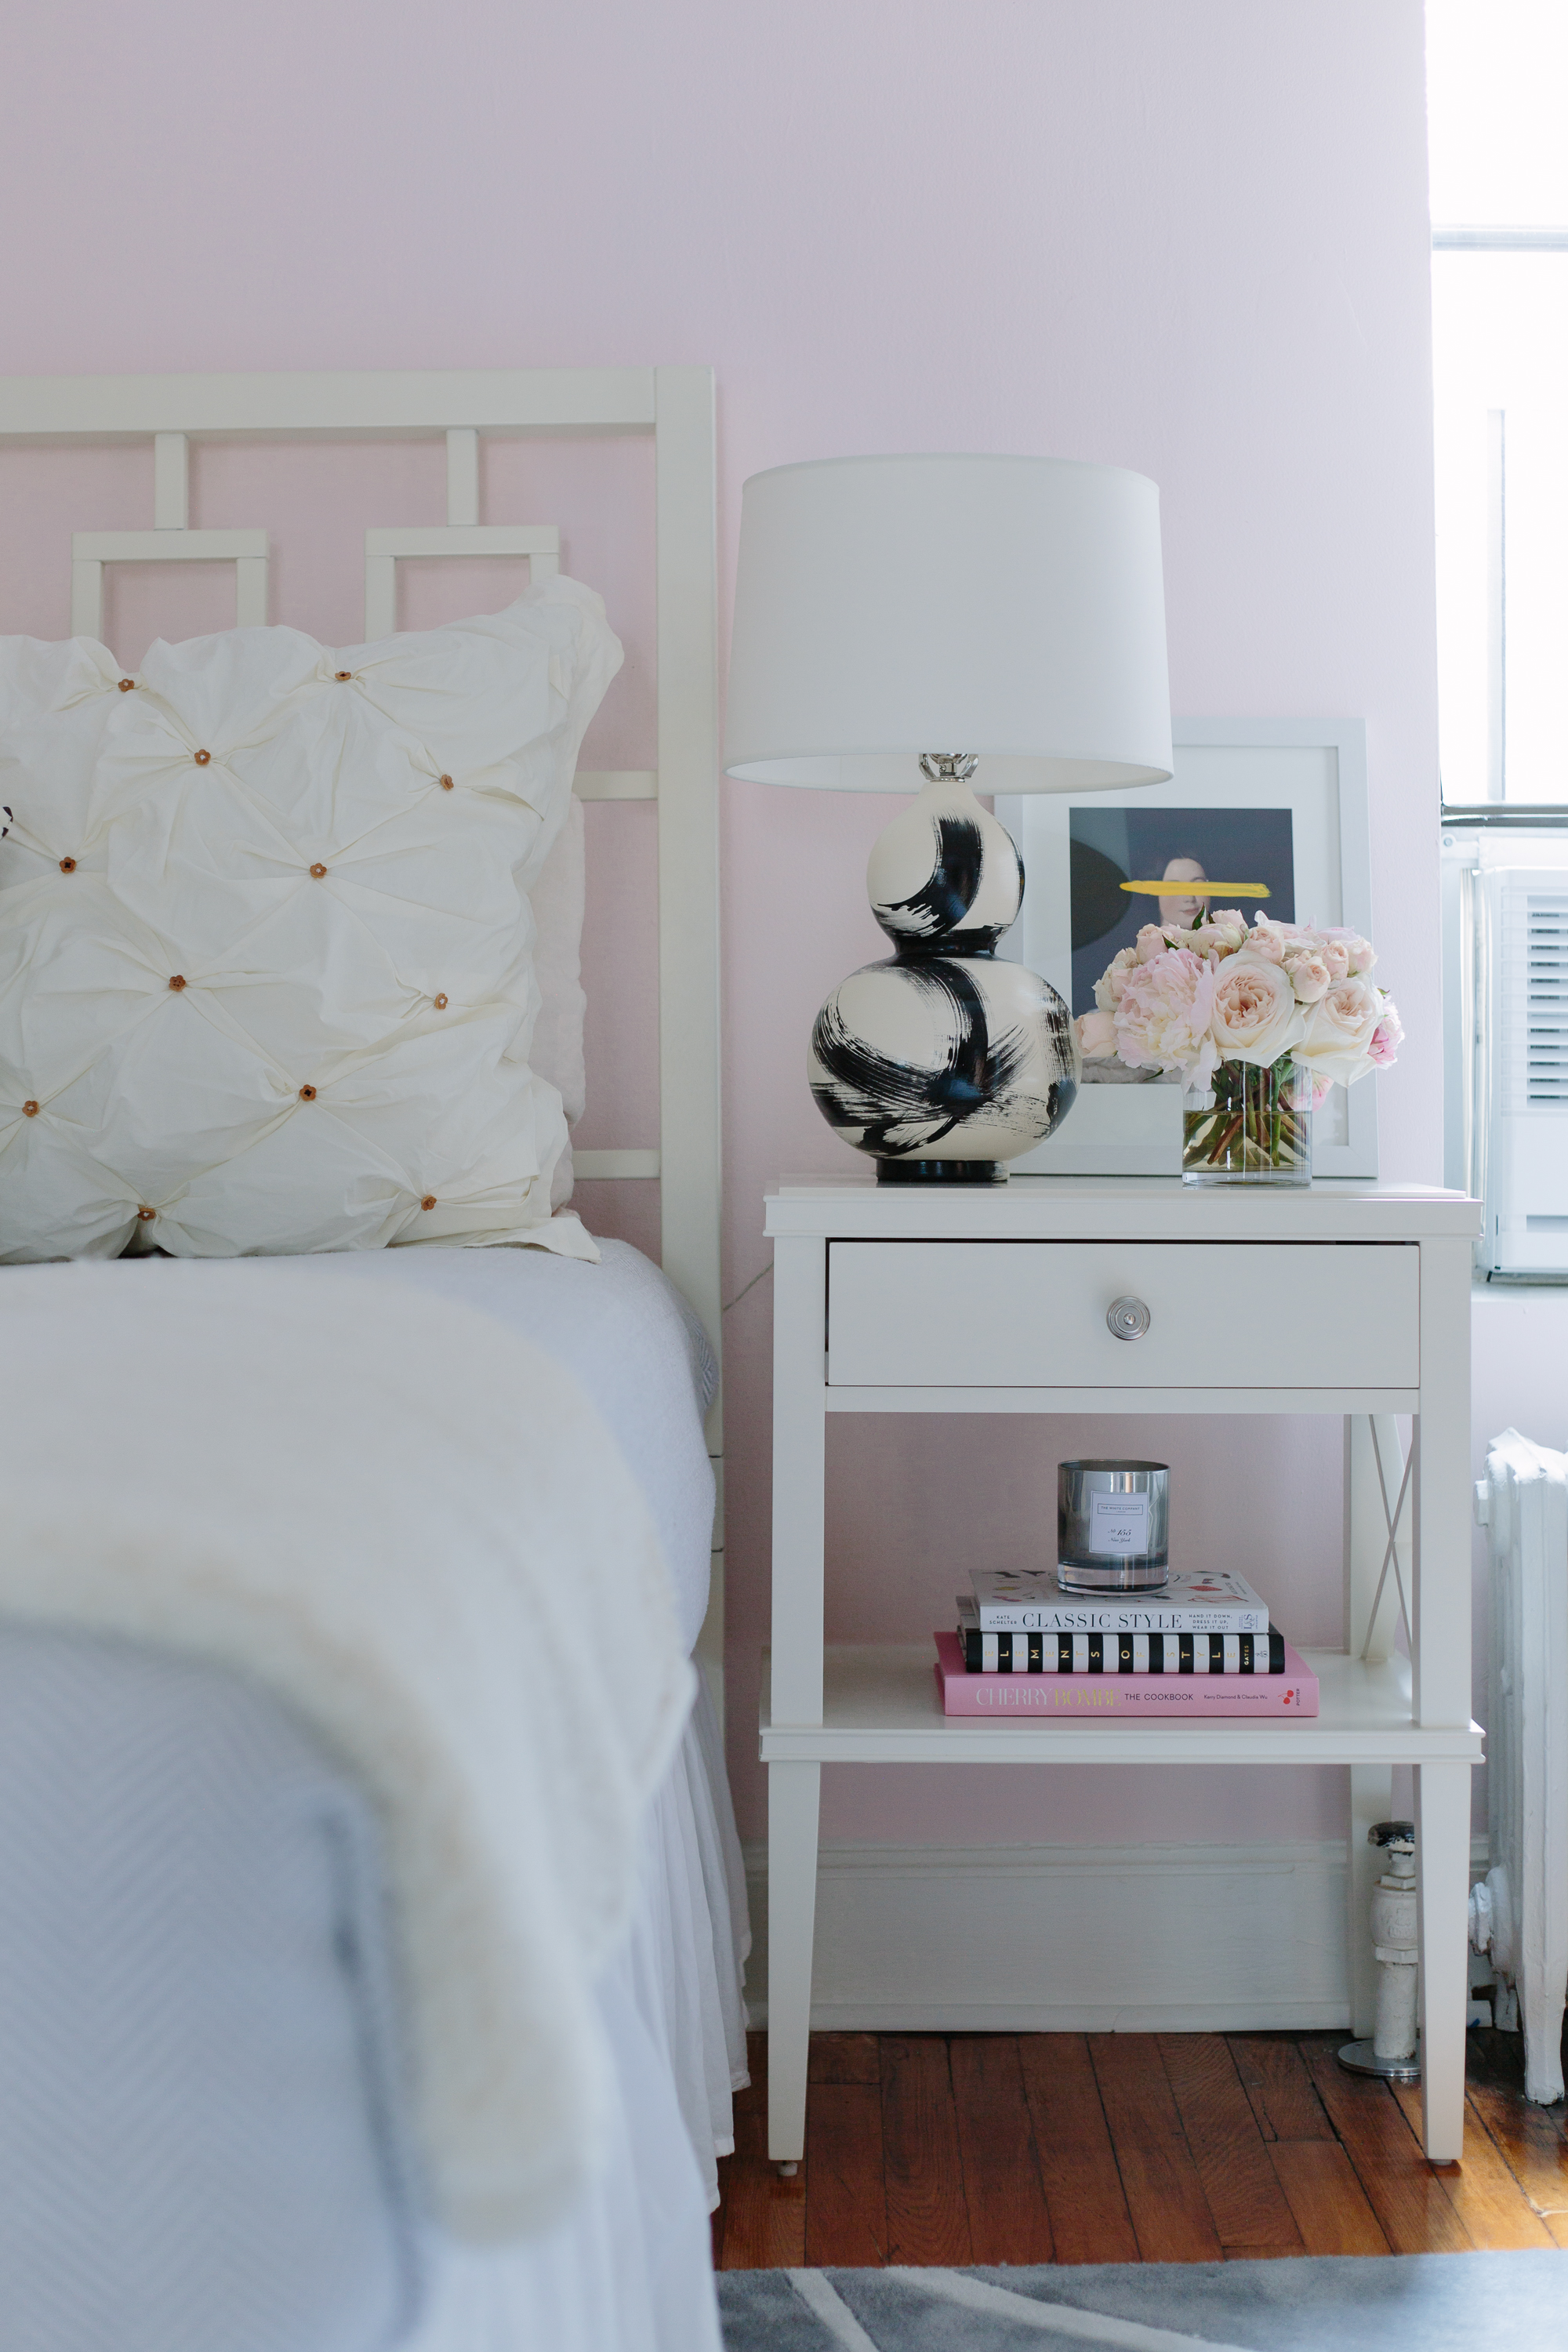 pottery barn clara nightstand in a bedroom painted farrow and ball middleton pink